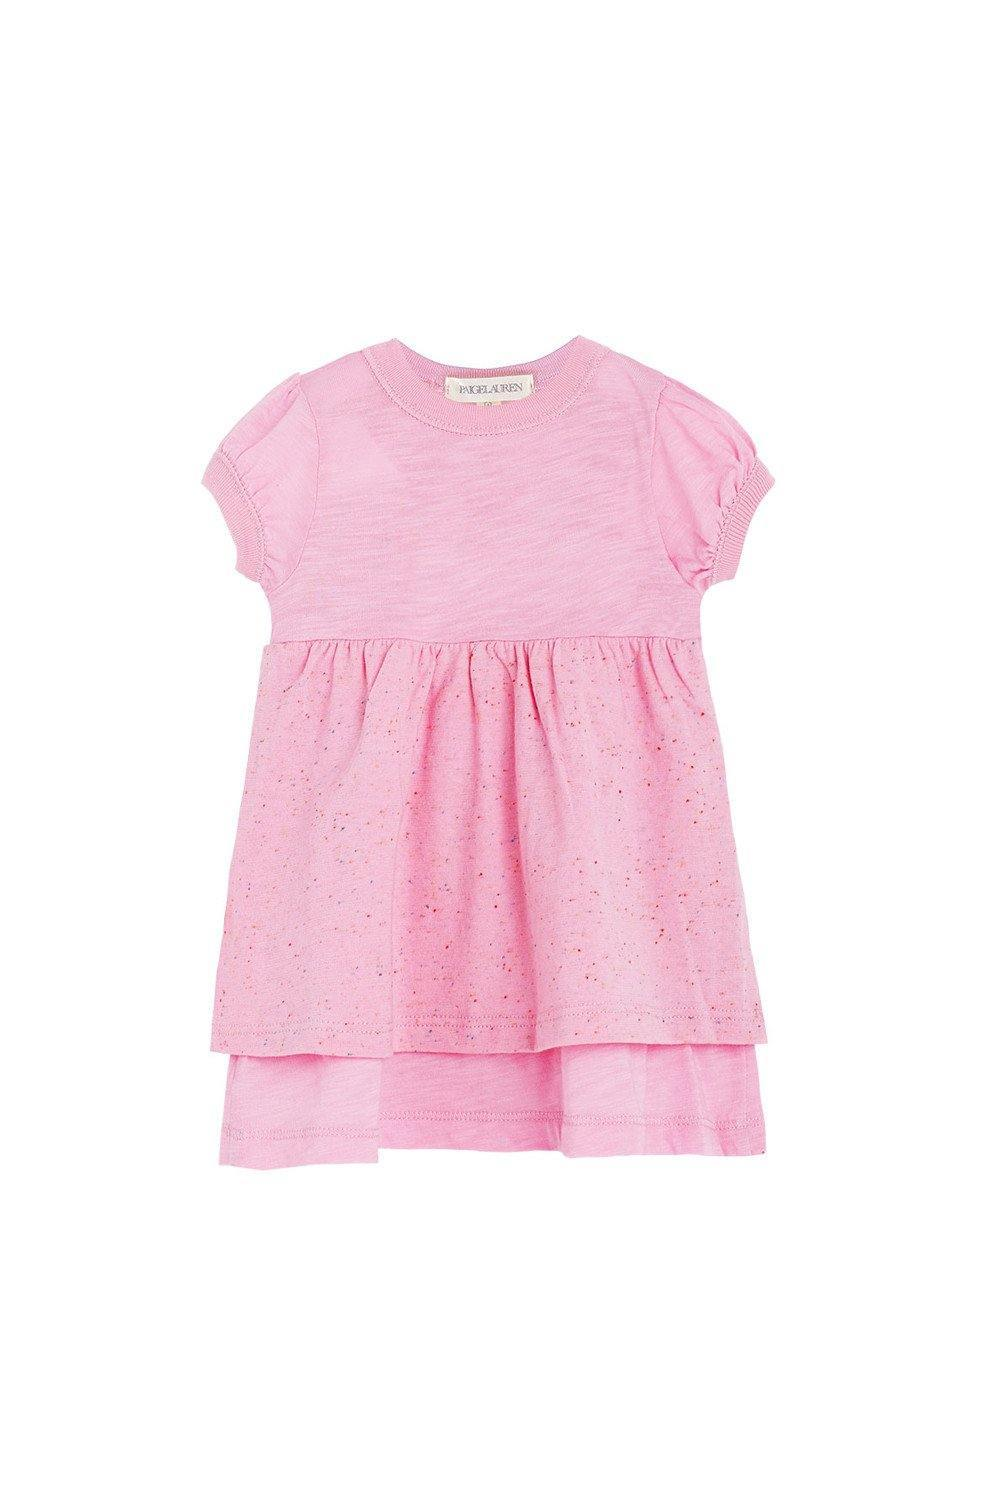 Baby S/S Dress - Sorbet - PAIGELAUREN